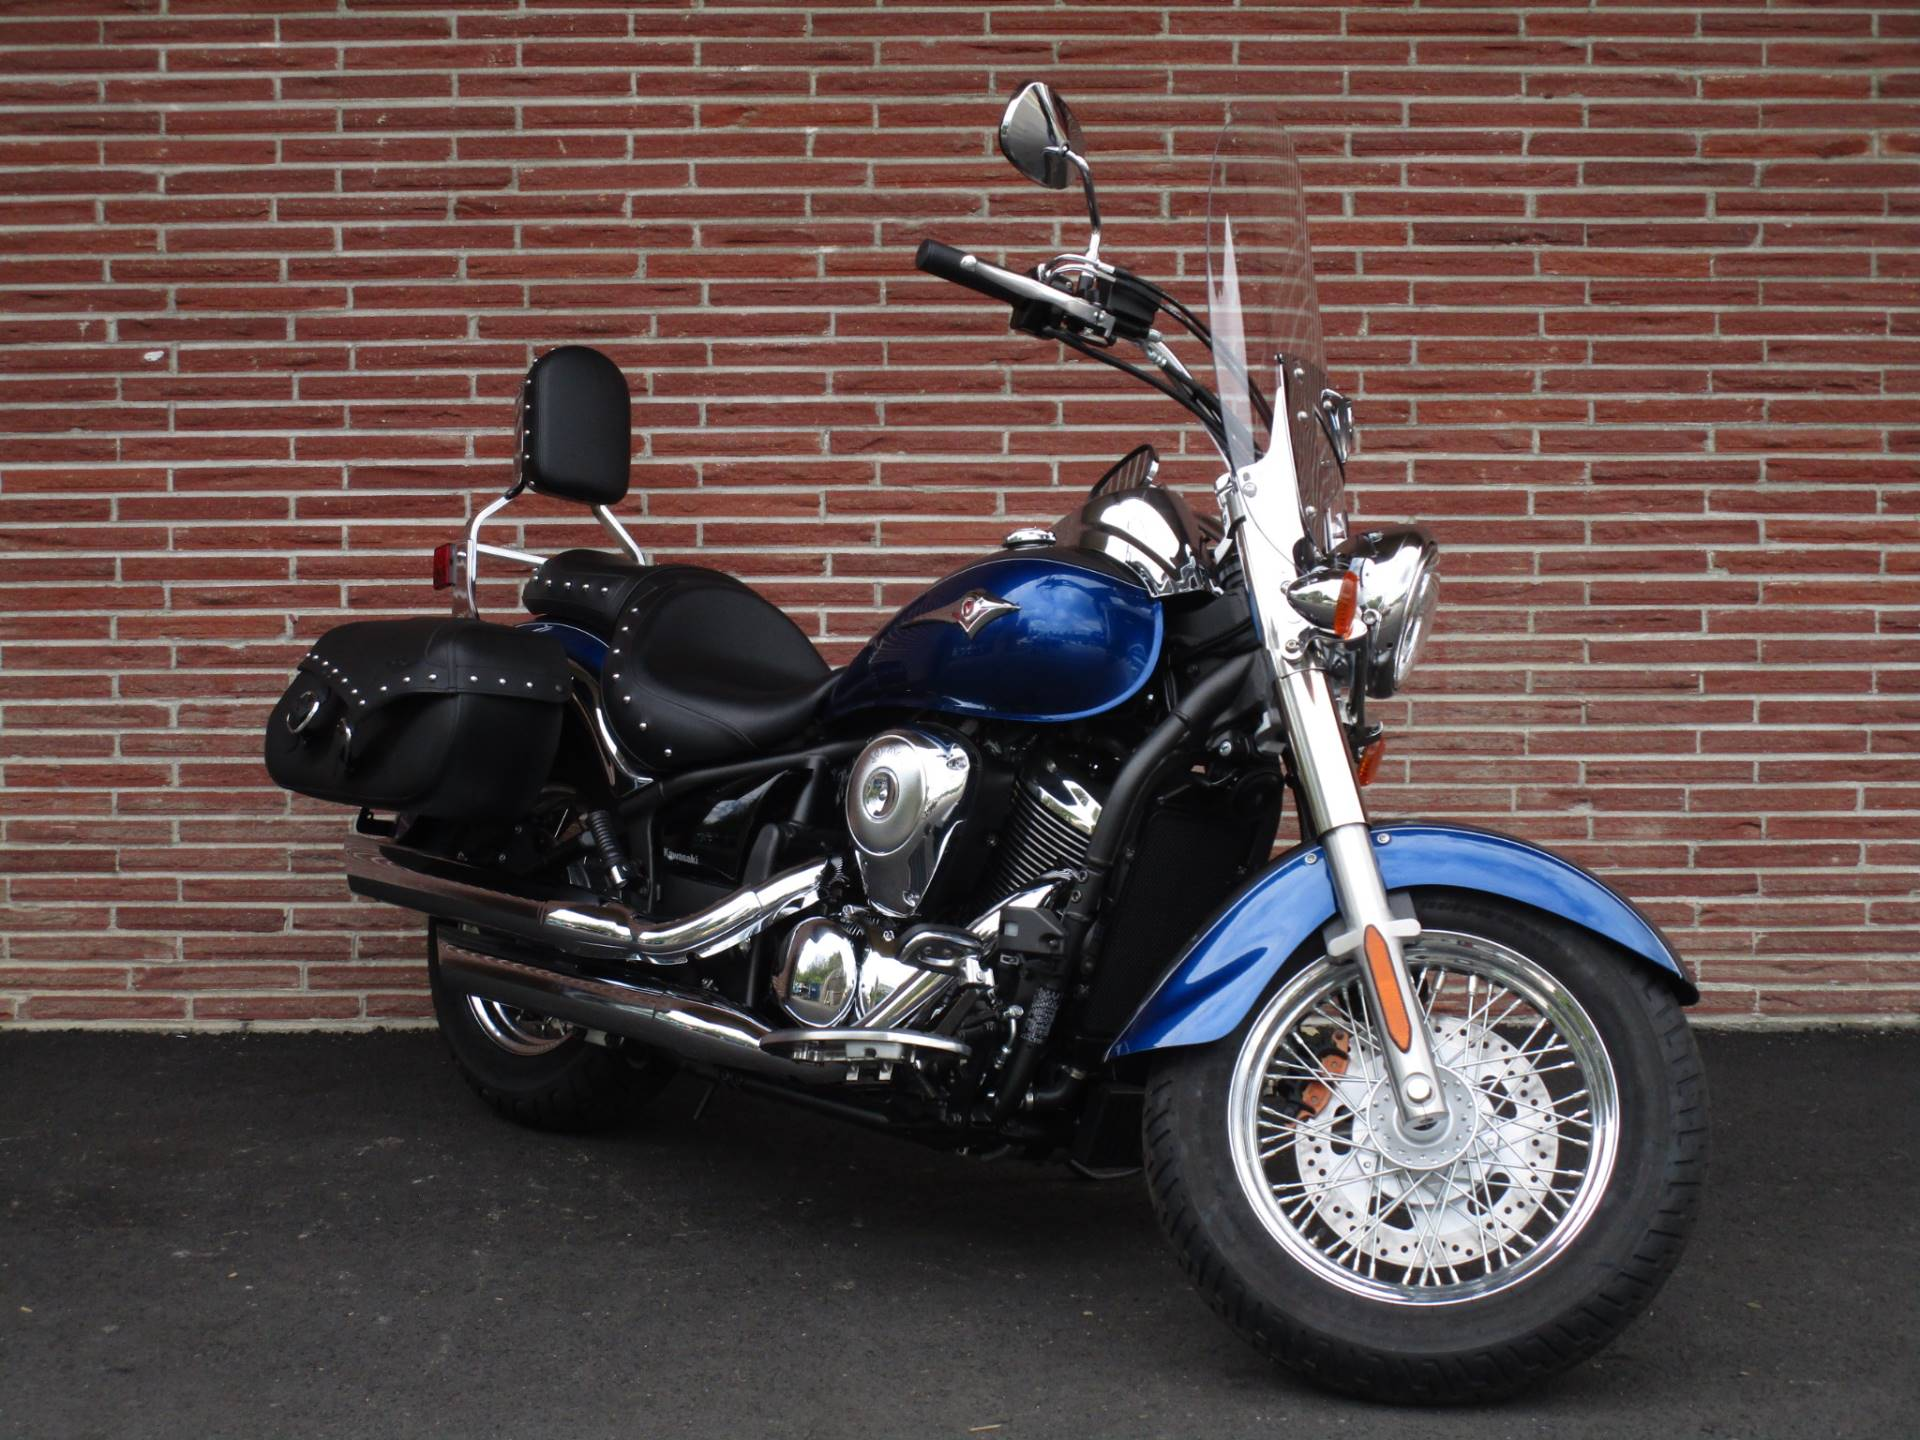 2019 Kawasaki Vulcan 900 Classic LT in Bellevue, Washington - Photo 2